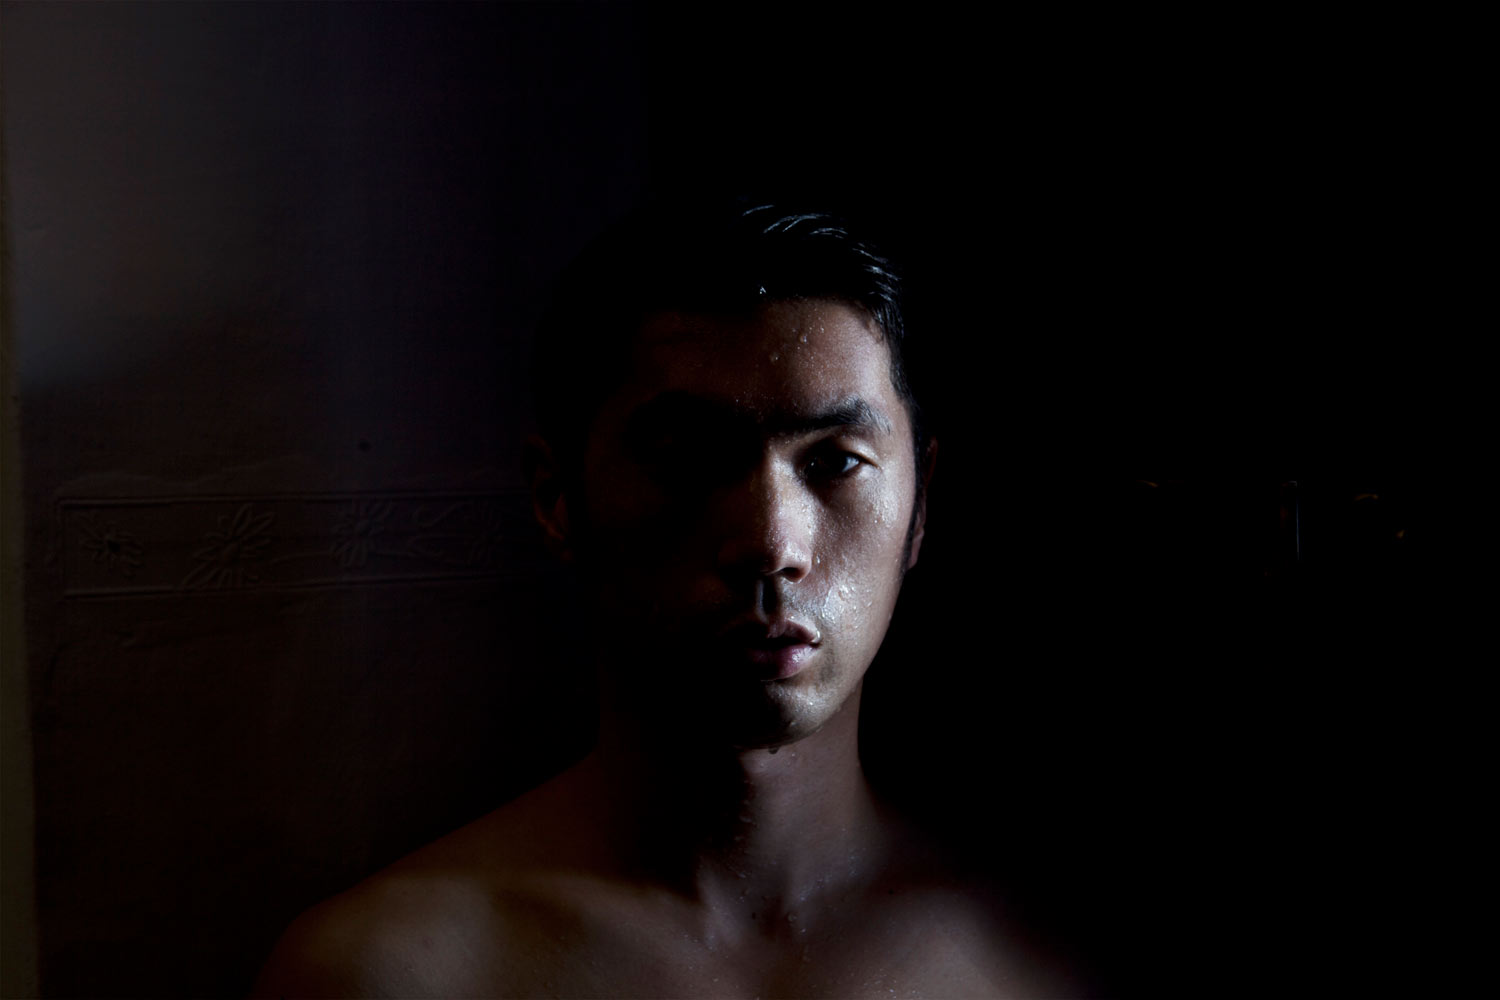 Shen Wei,  Self-portrait (Cusco #2) , 2013. Archival Pigment Print. © Courtesy of the artist and Flowers Gallery (London/New York).